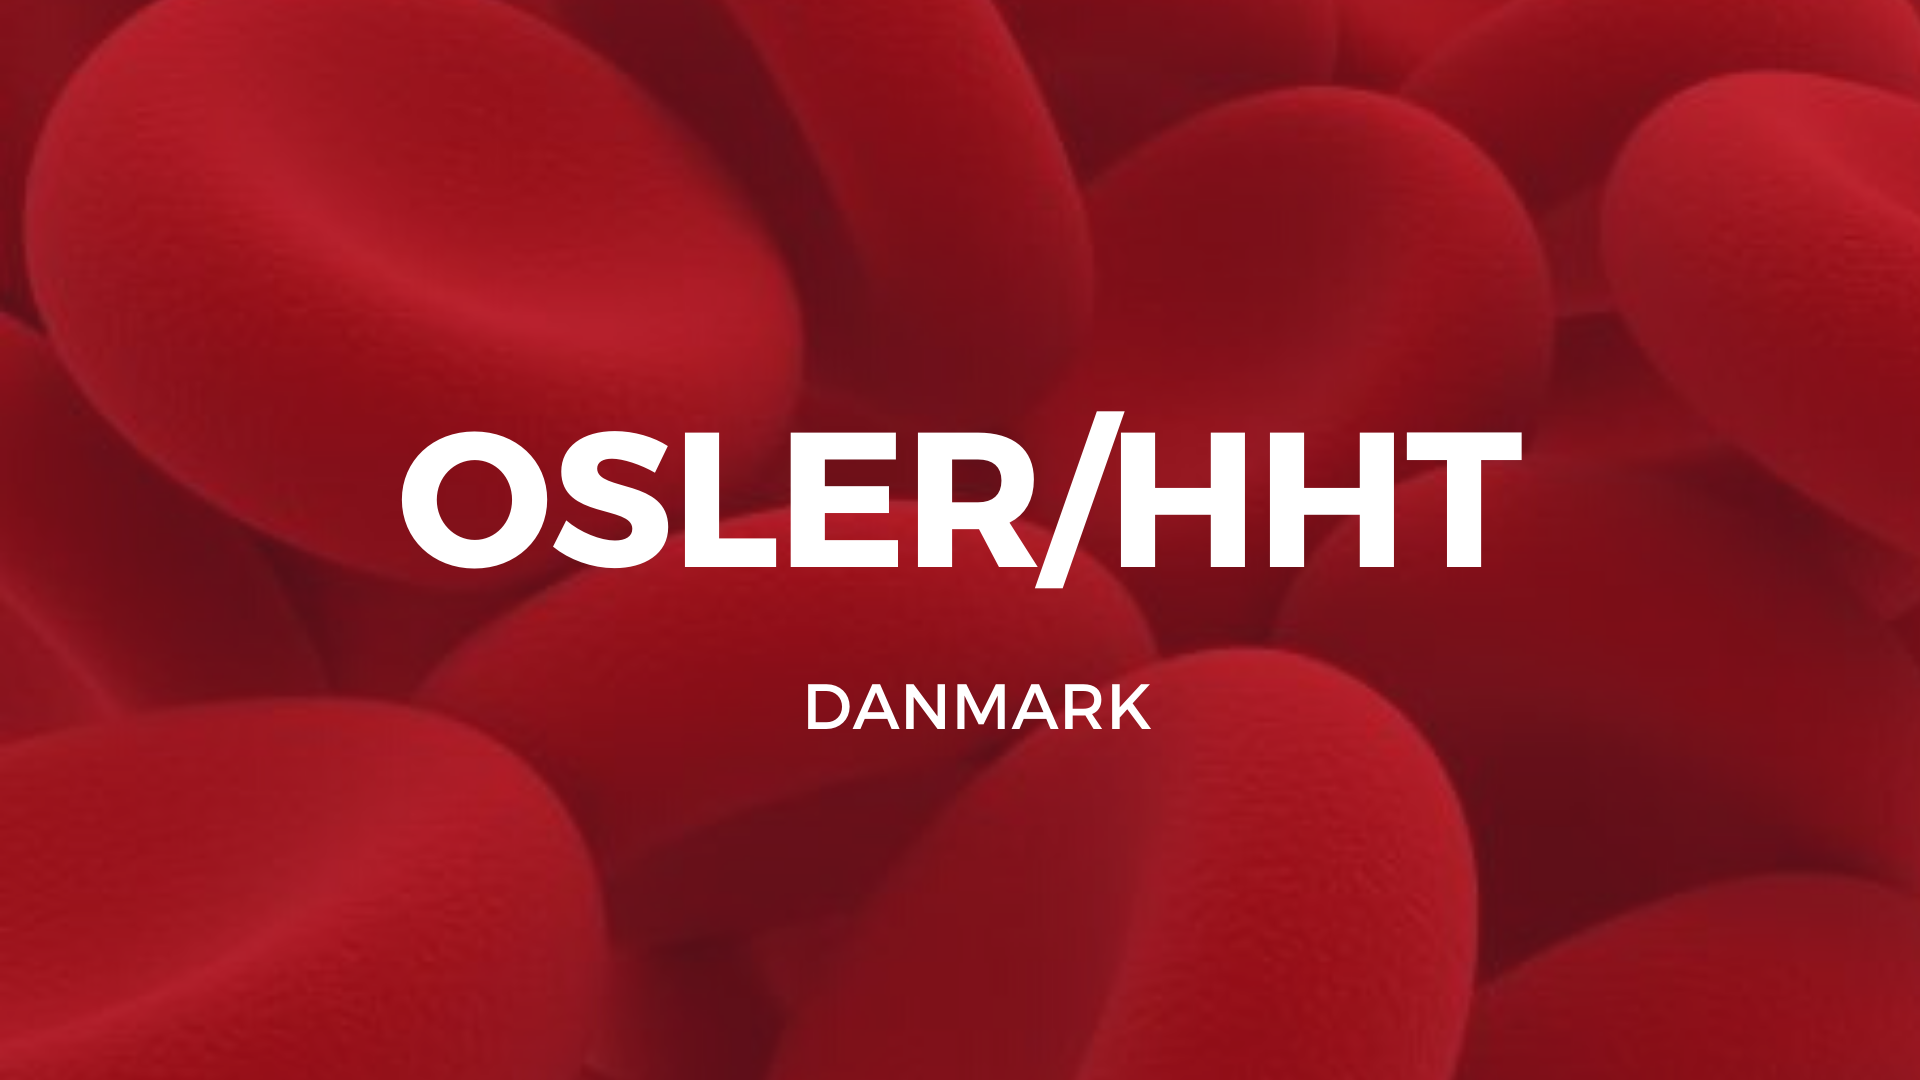 Patientforeningen for Osler patienter i Danmark